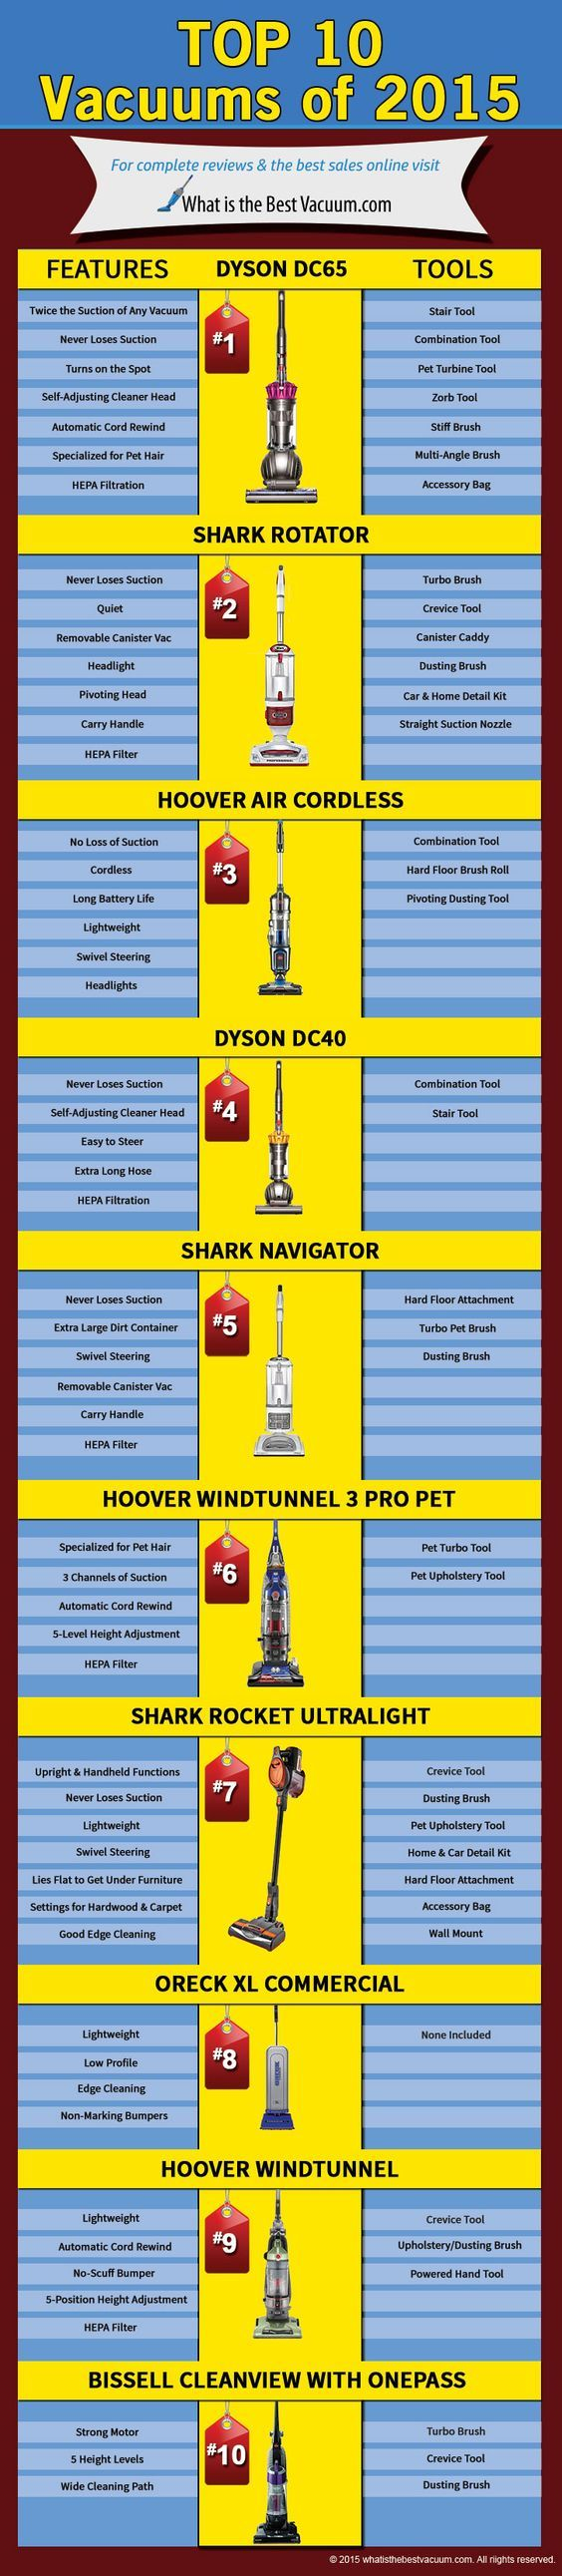 Wondering what vacuum cleaner to buy? Check this list of the best vacuum cleaners of 2015 to see which ones make the grade and which ones to avoid.